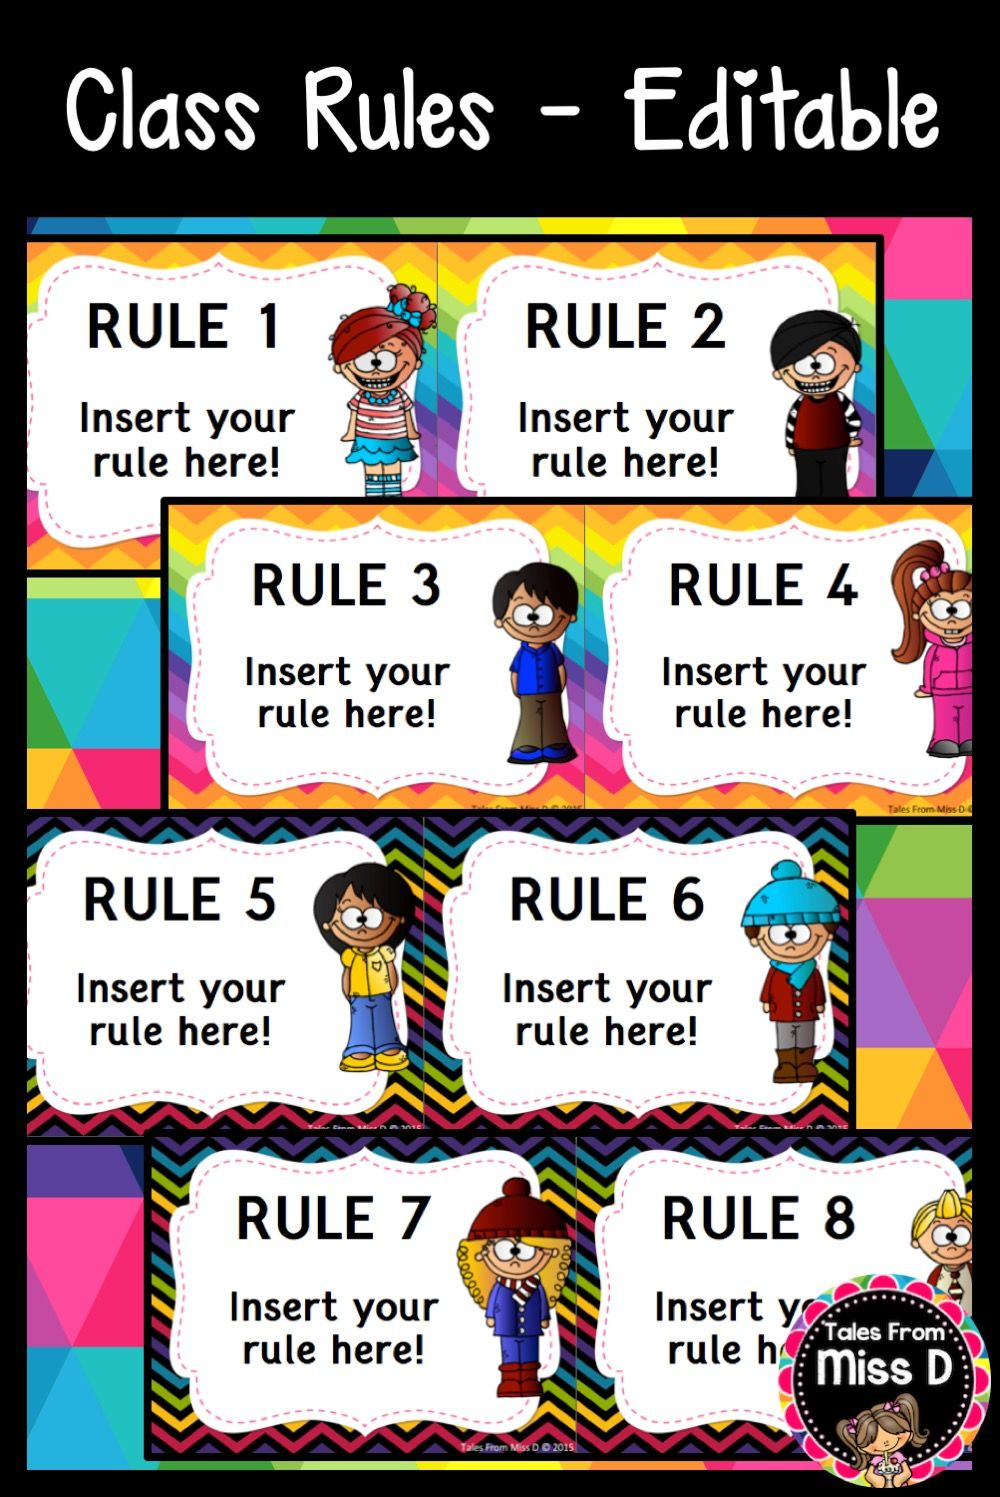 Create your own Class Rules Display with this editable